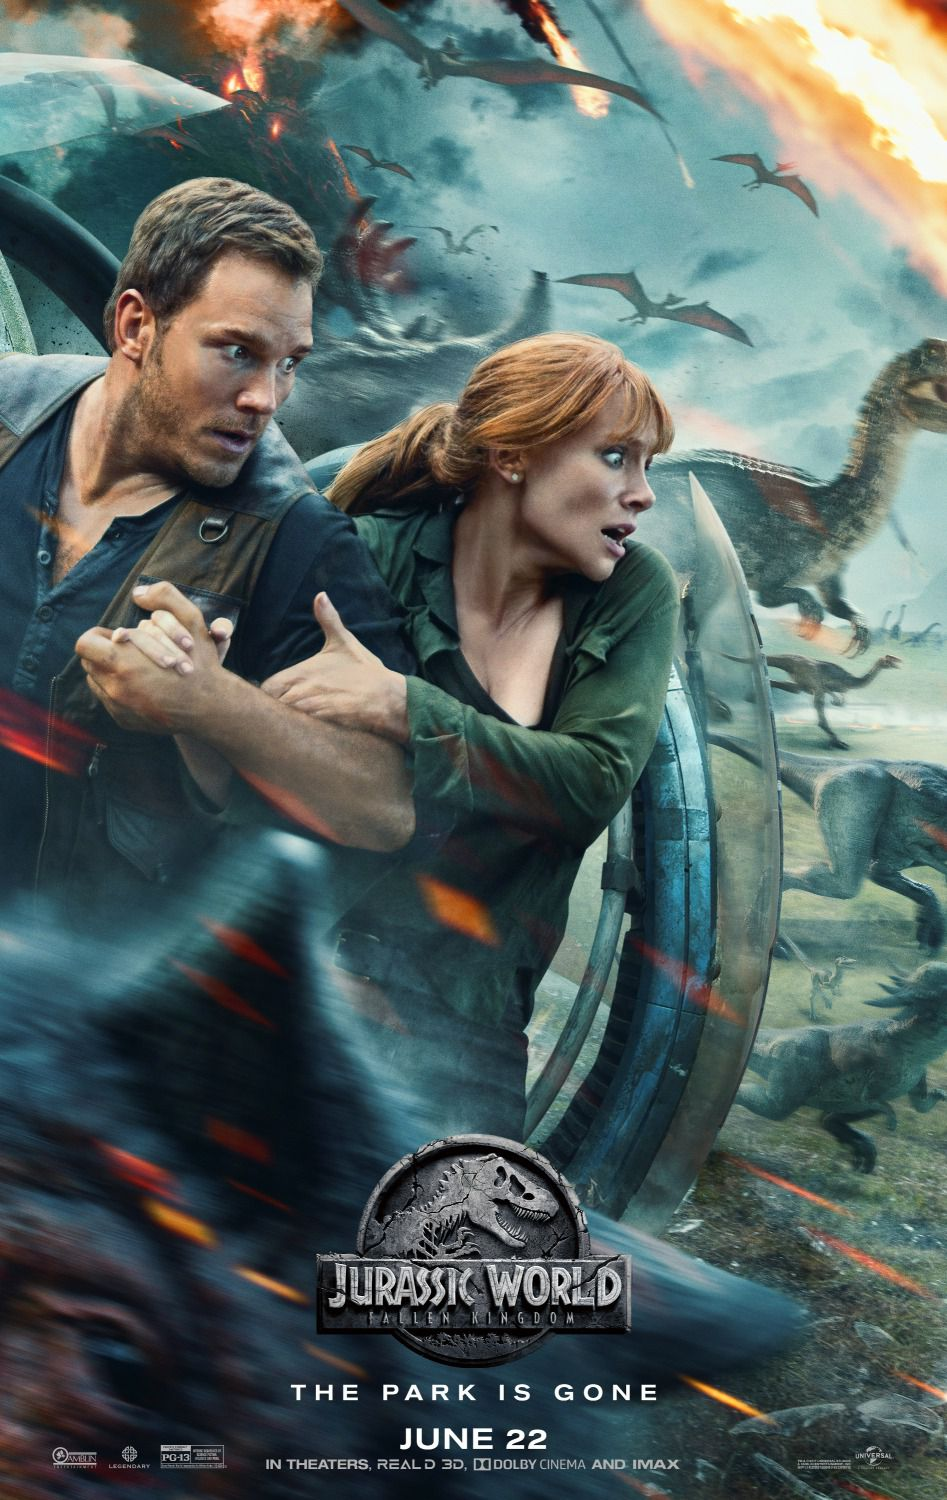 Jurassic World Fallen Kingdom - Chris Pratt, Bryce Dallas Howard, Rafe Spall, Toby Jones - poster 2018